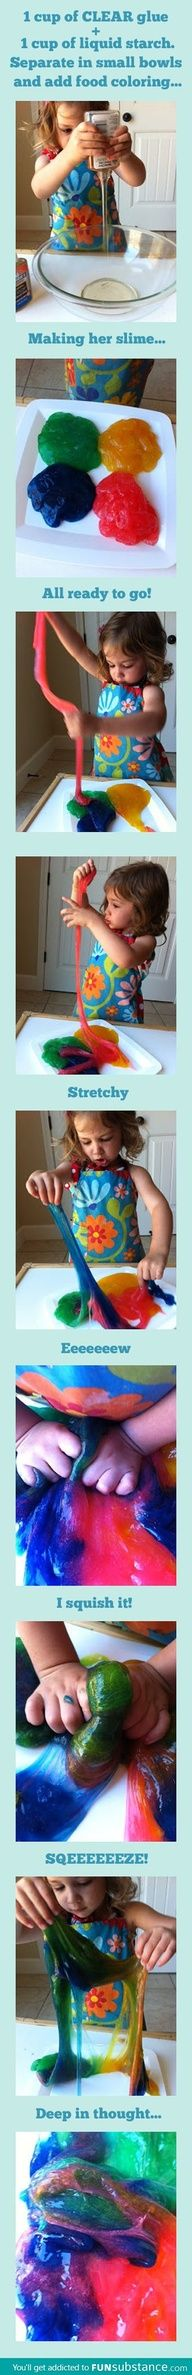 A Fun Weekend Activity for Any Kid.  How to Make Your Very Own Slime